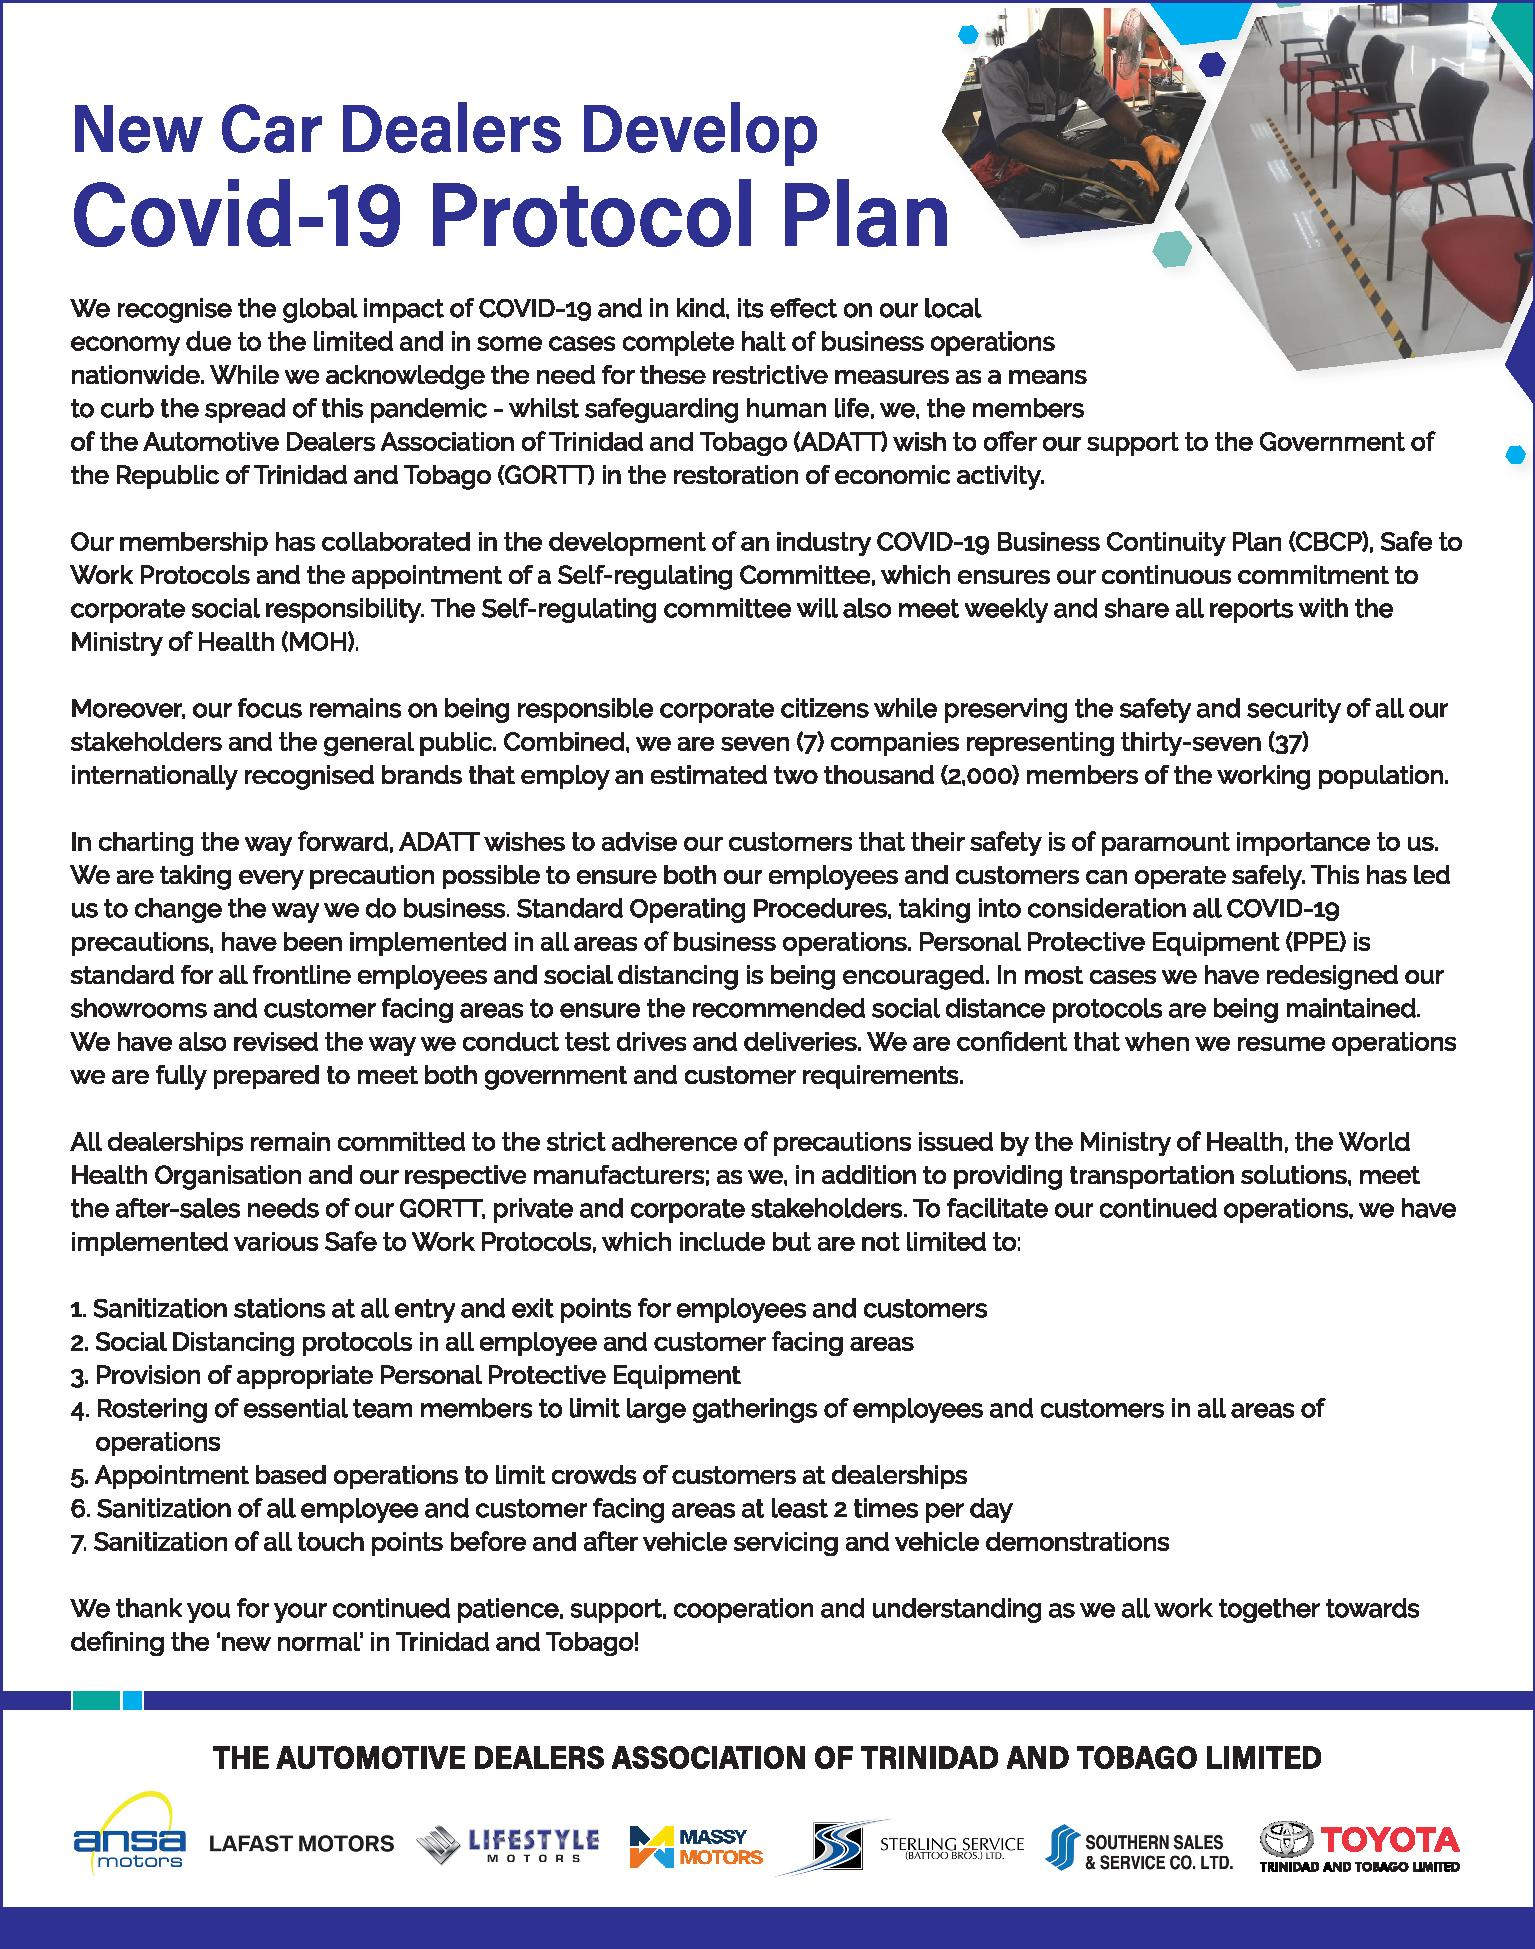 New Car Dealers Develop COVID-19 Protocol Plan